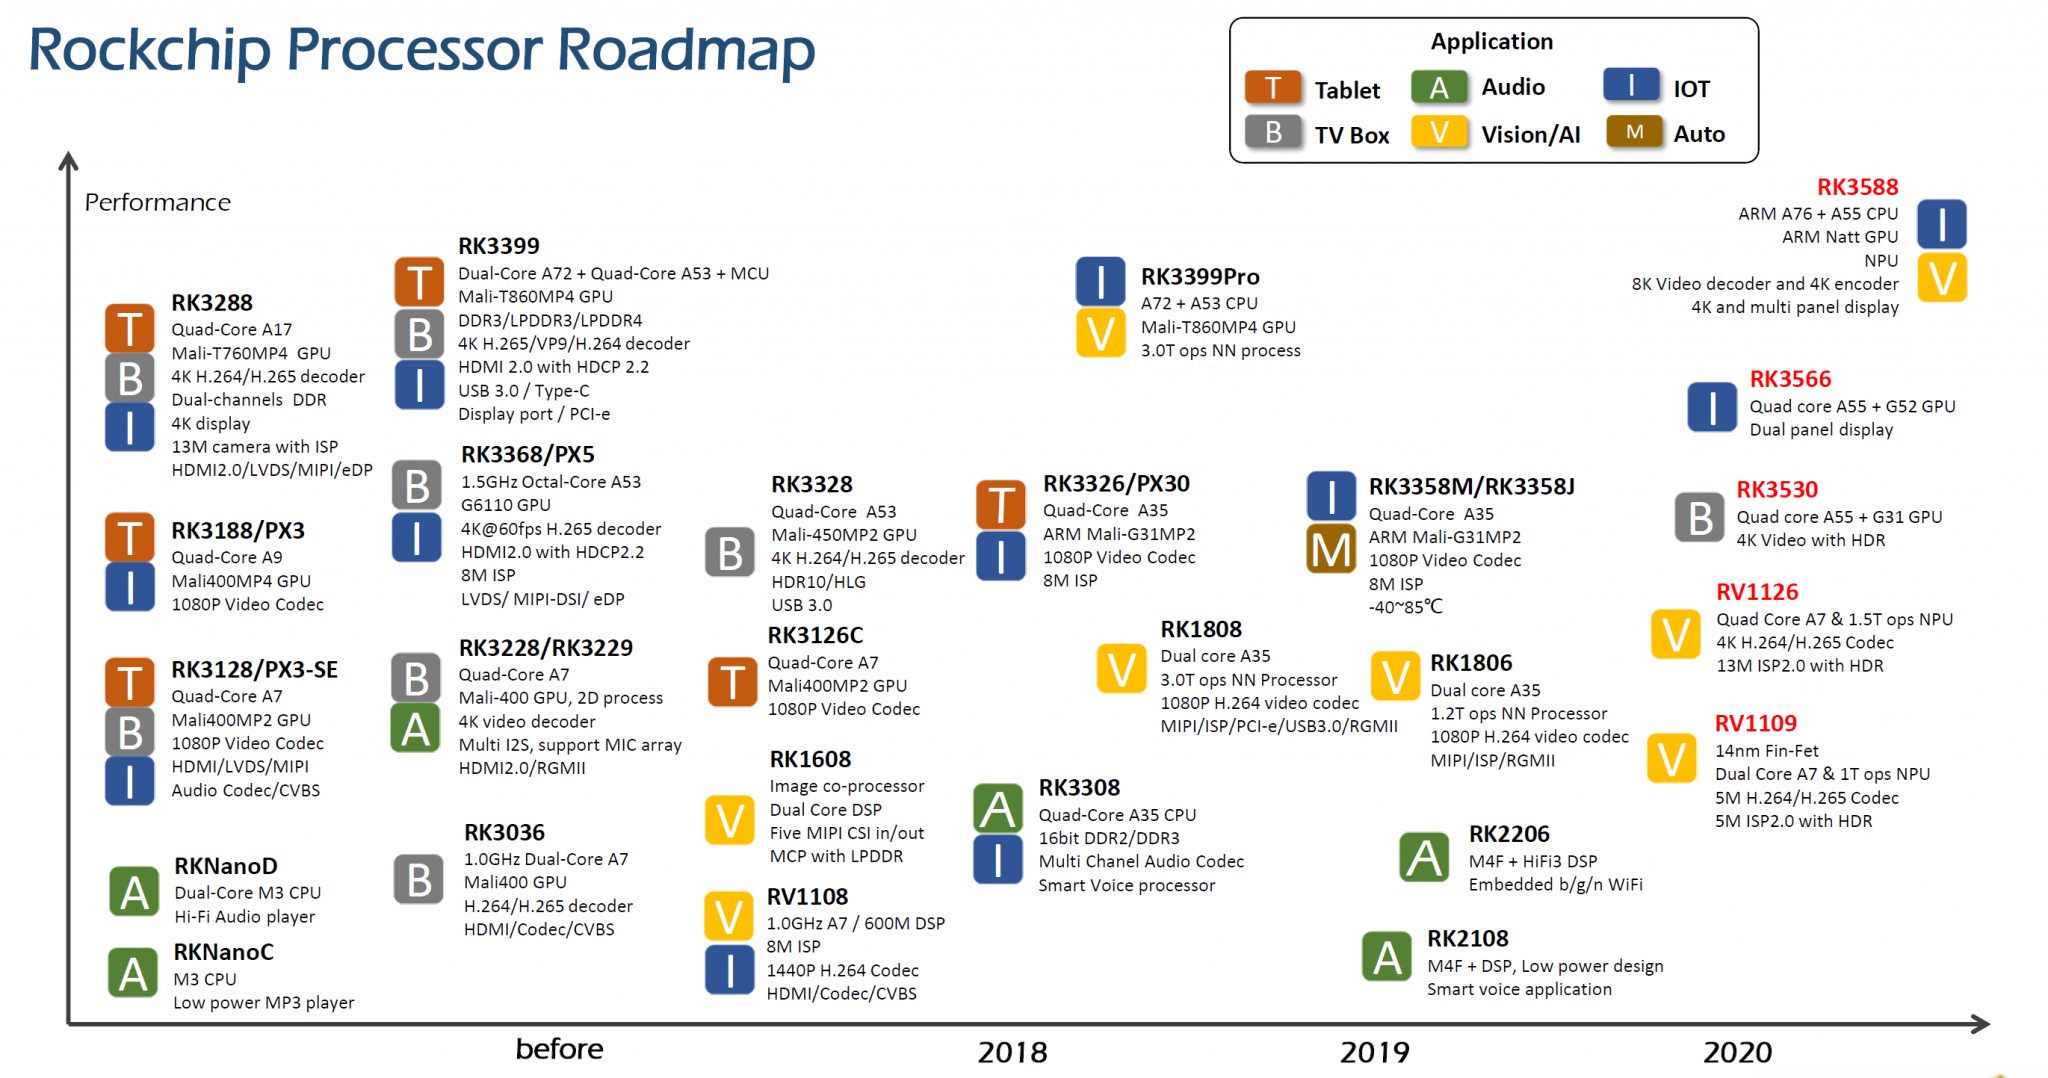 Rockchip Roadmap 2020